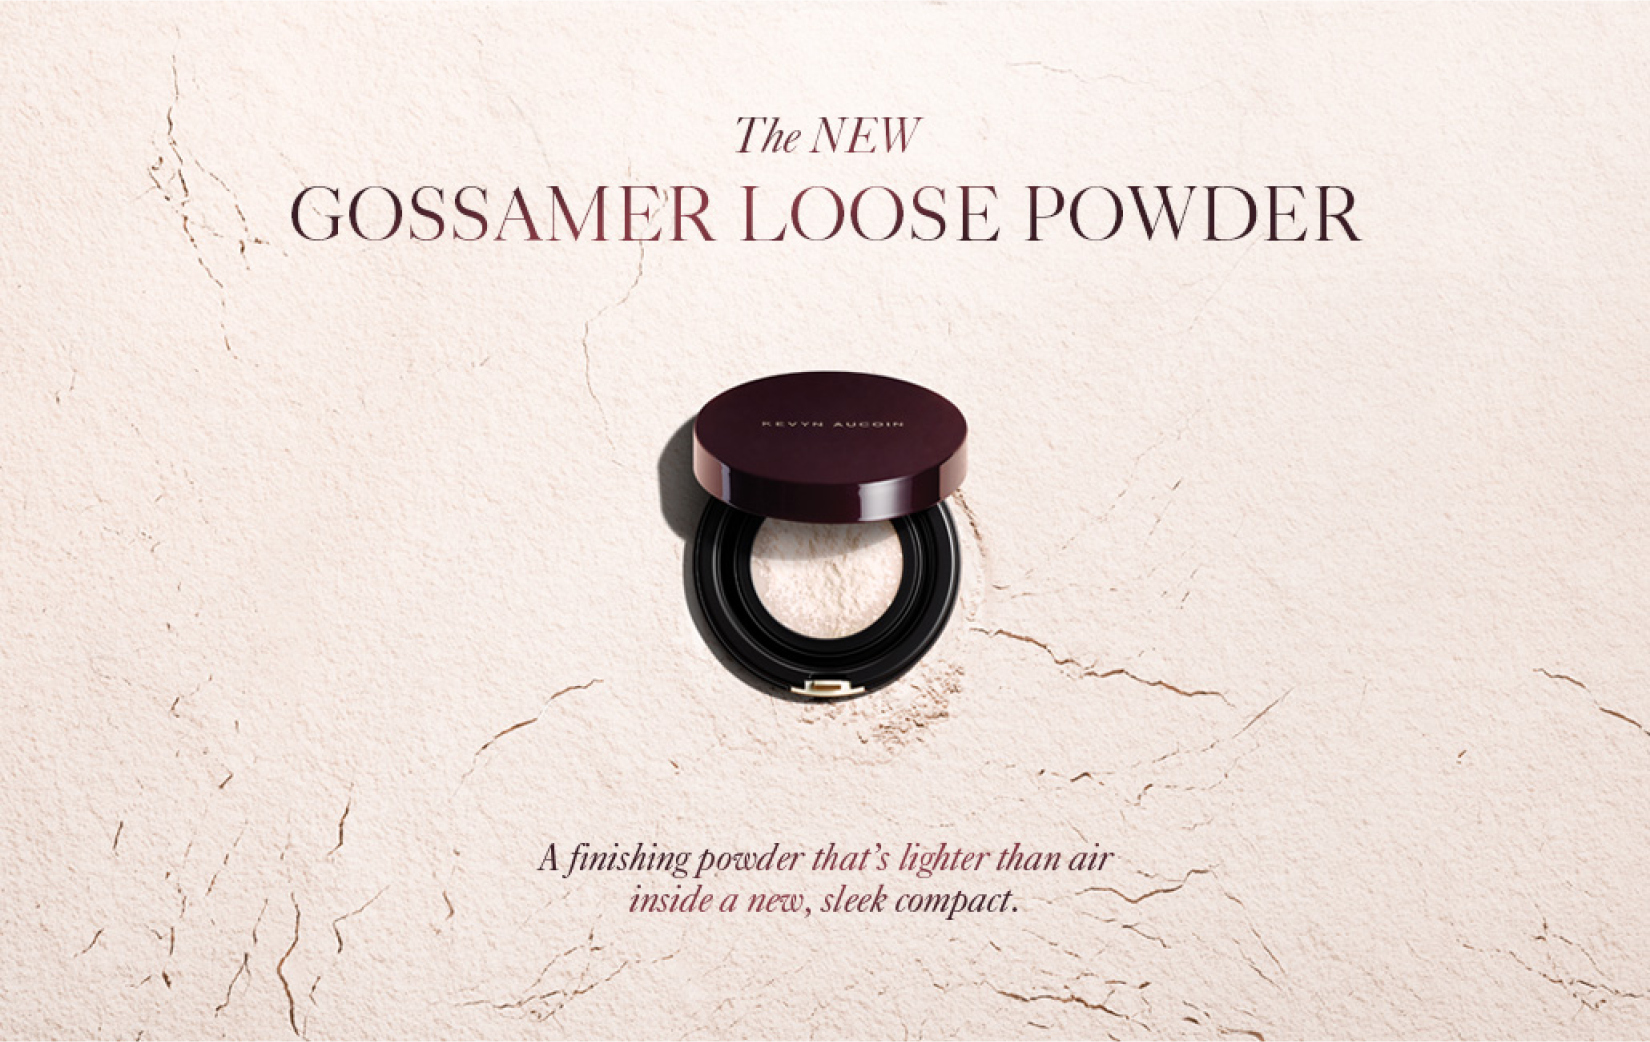 Gossamer loose powder by Kevyn Aucoin designed and packaged by DTE Studio